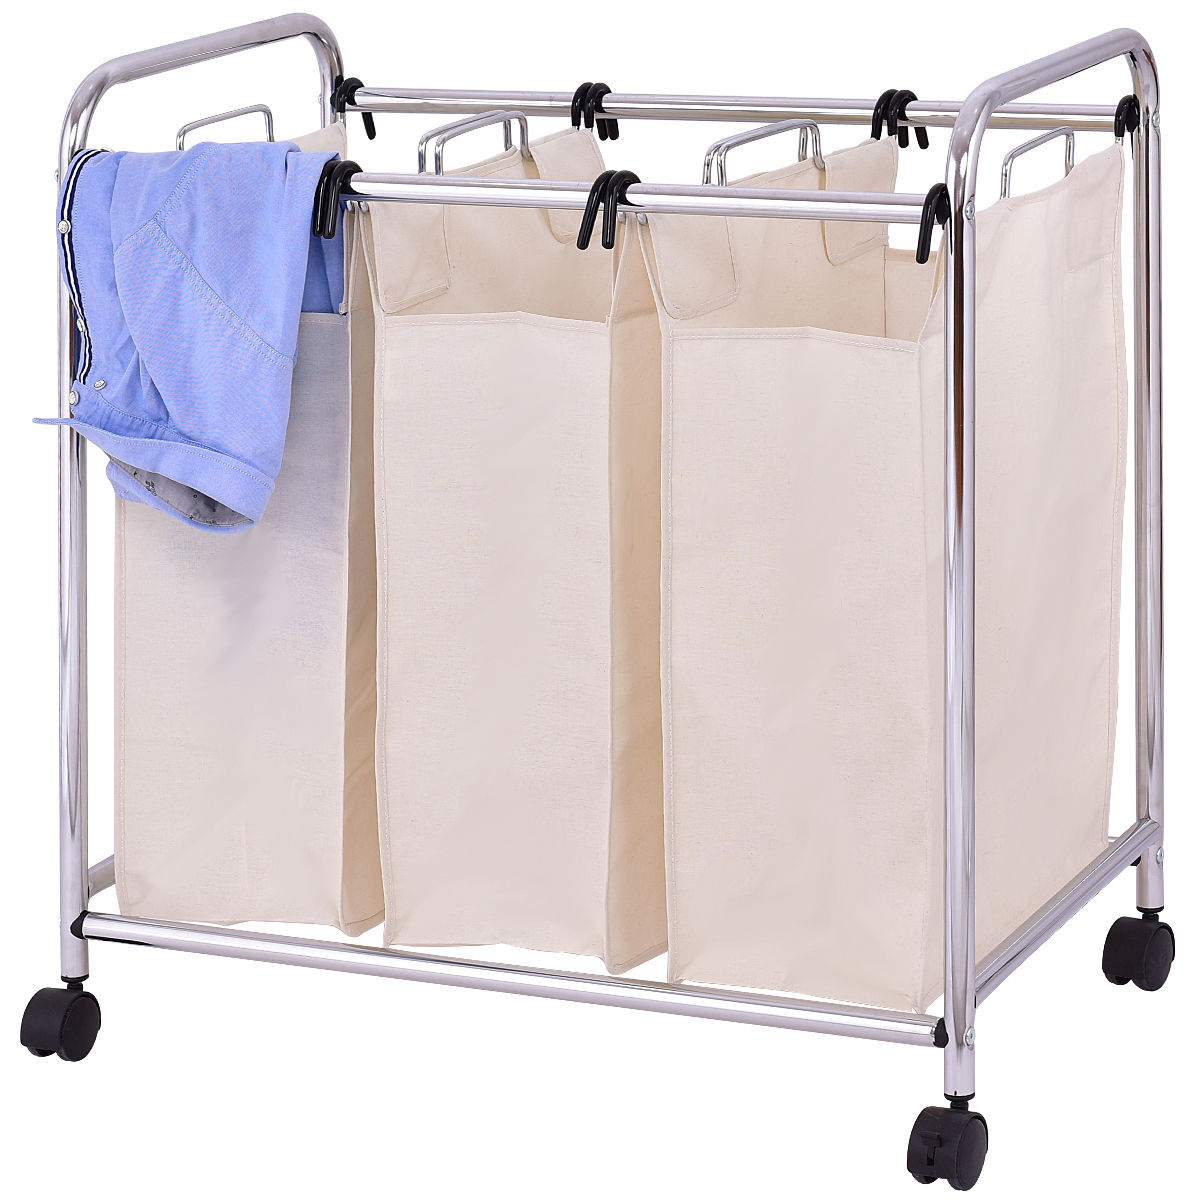 Goplus Laundry Cart Basket Triple Bag Sorter Portable Bathroom Hamper Bins Rolling Dirty ...